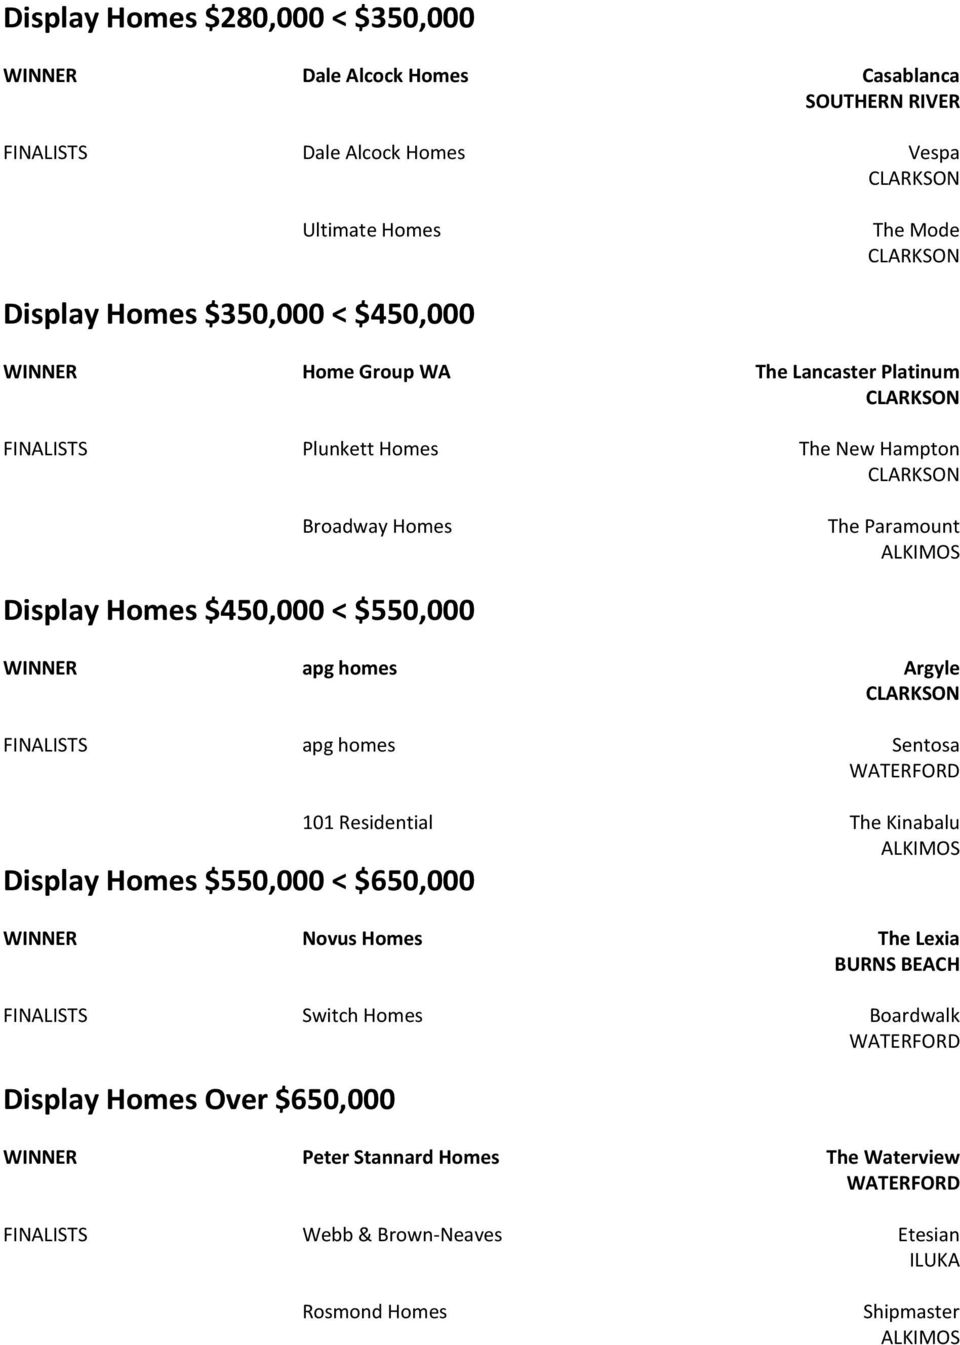 Argyle FINALISTS apg homes Sentosa WATERFORD 101 Residential The Kinabalu ALKIMOS Display Homes $550,000 < $650,000 Novus Homes The Lexia BURNS BEACH FINALISTS Switch